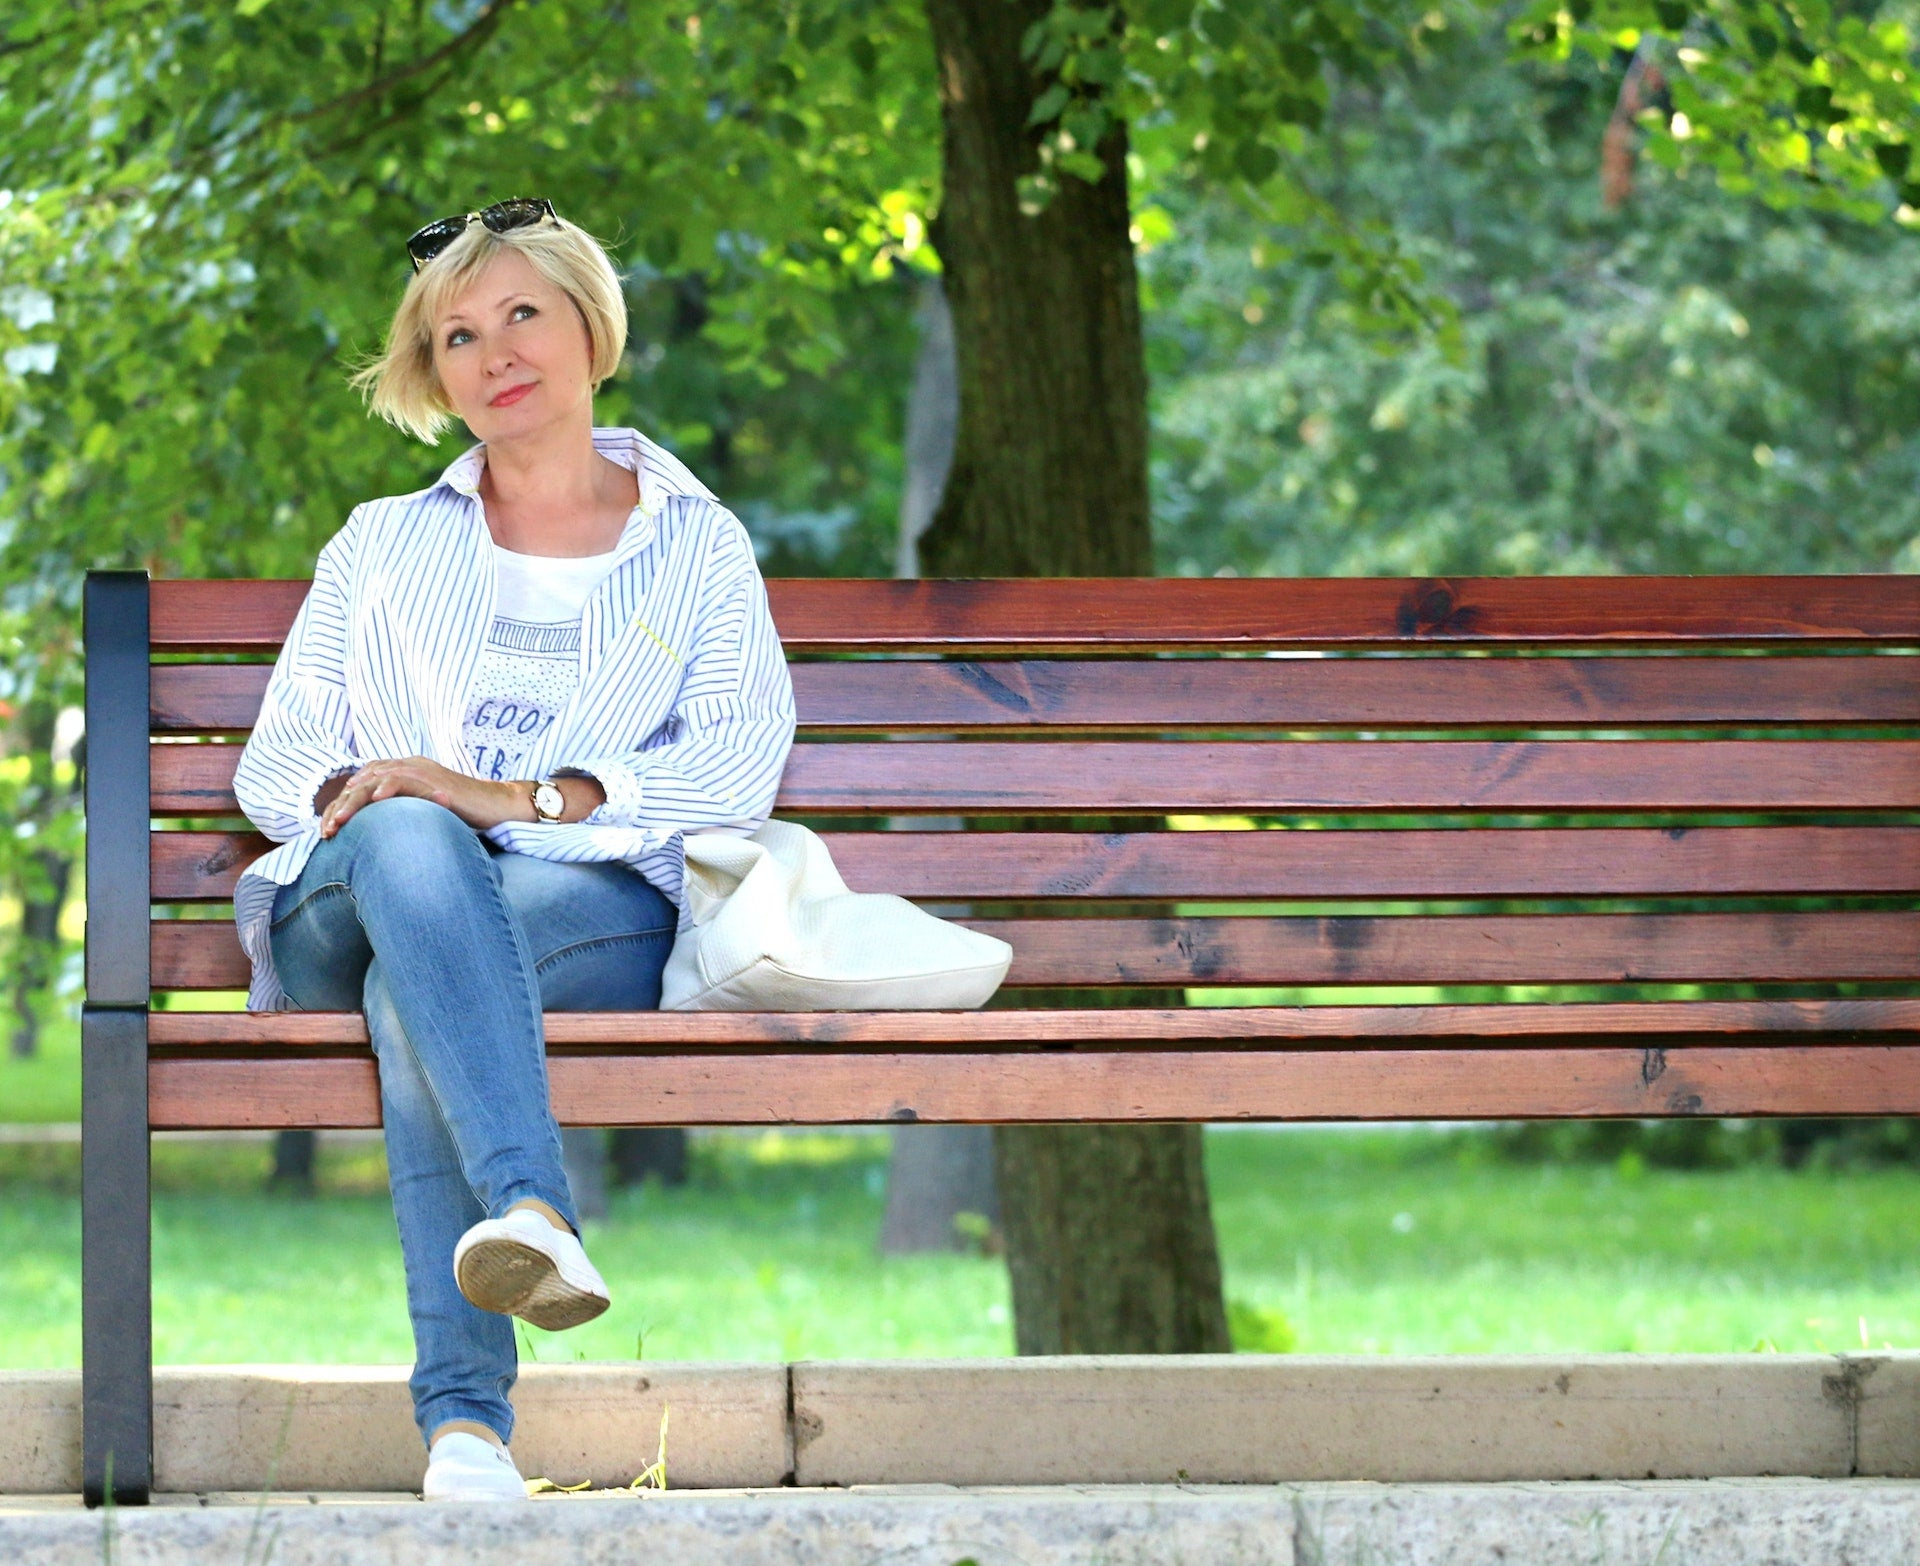 Perimenopause supplements: A middle-aged woman sits on a bench